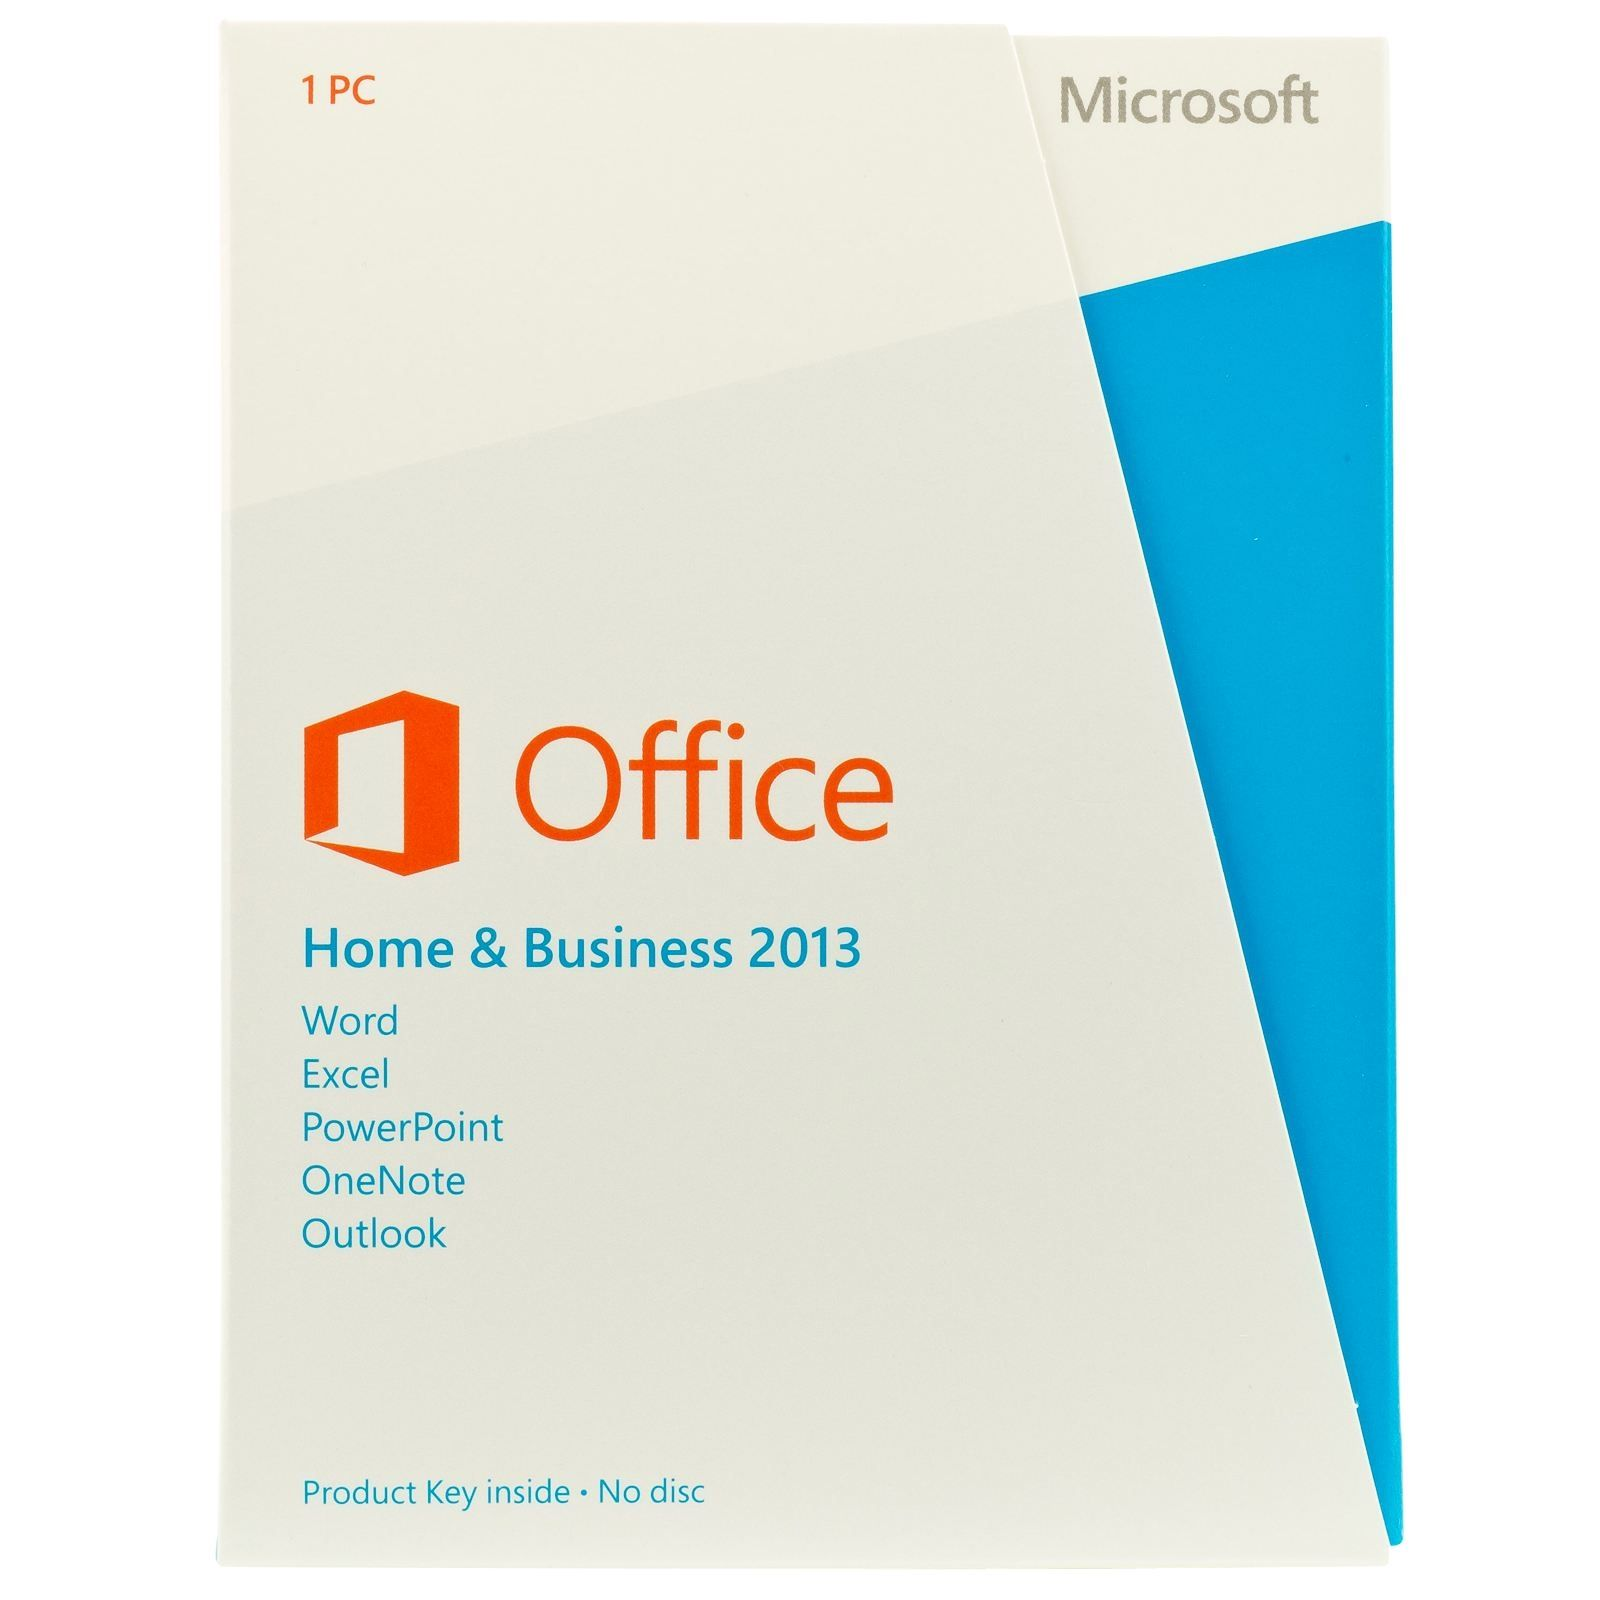 Office home and business 2013 engmedialess - Windows office home and business 2013 ...